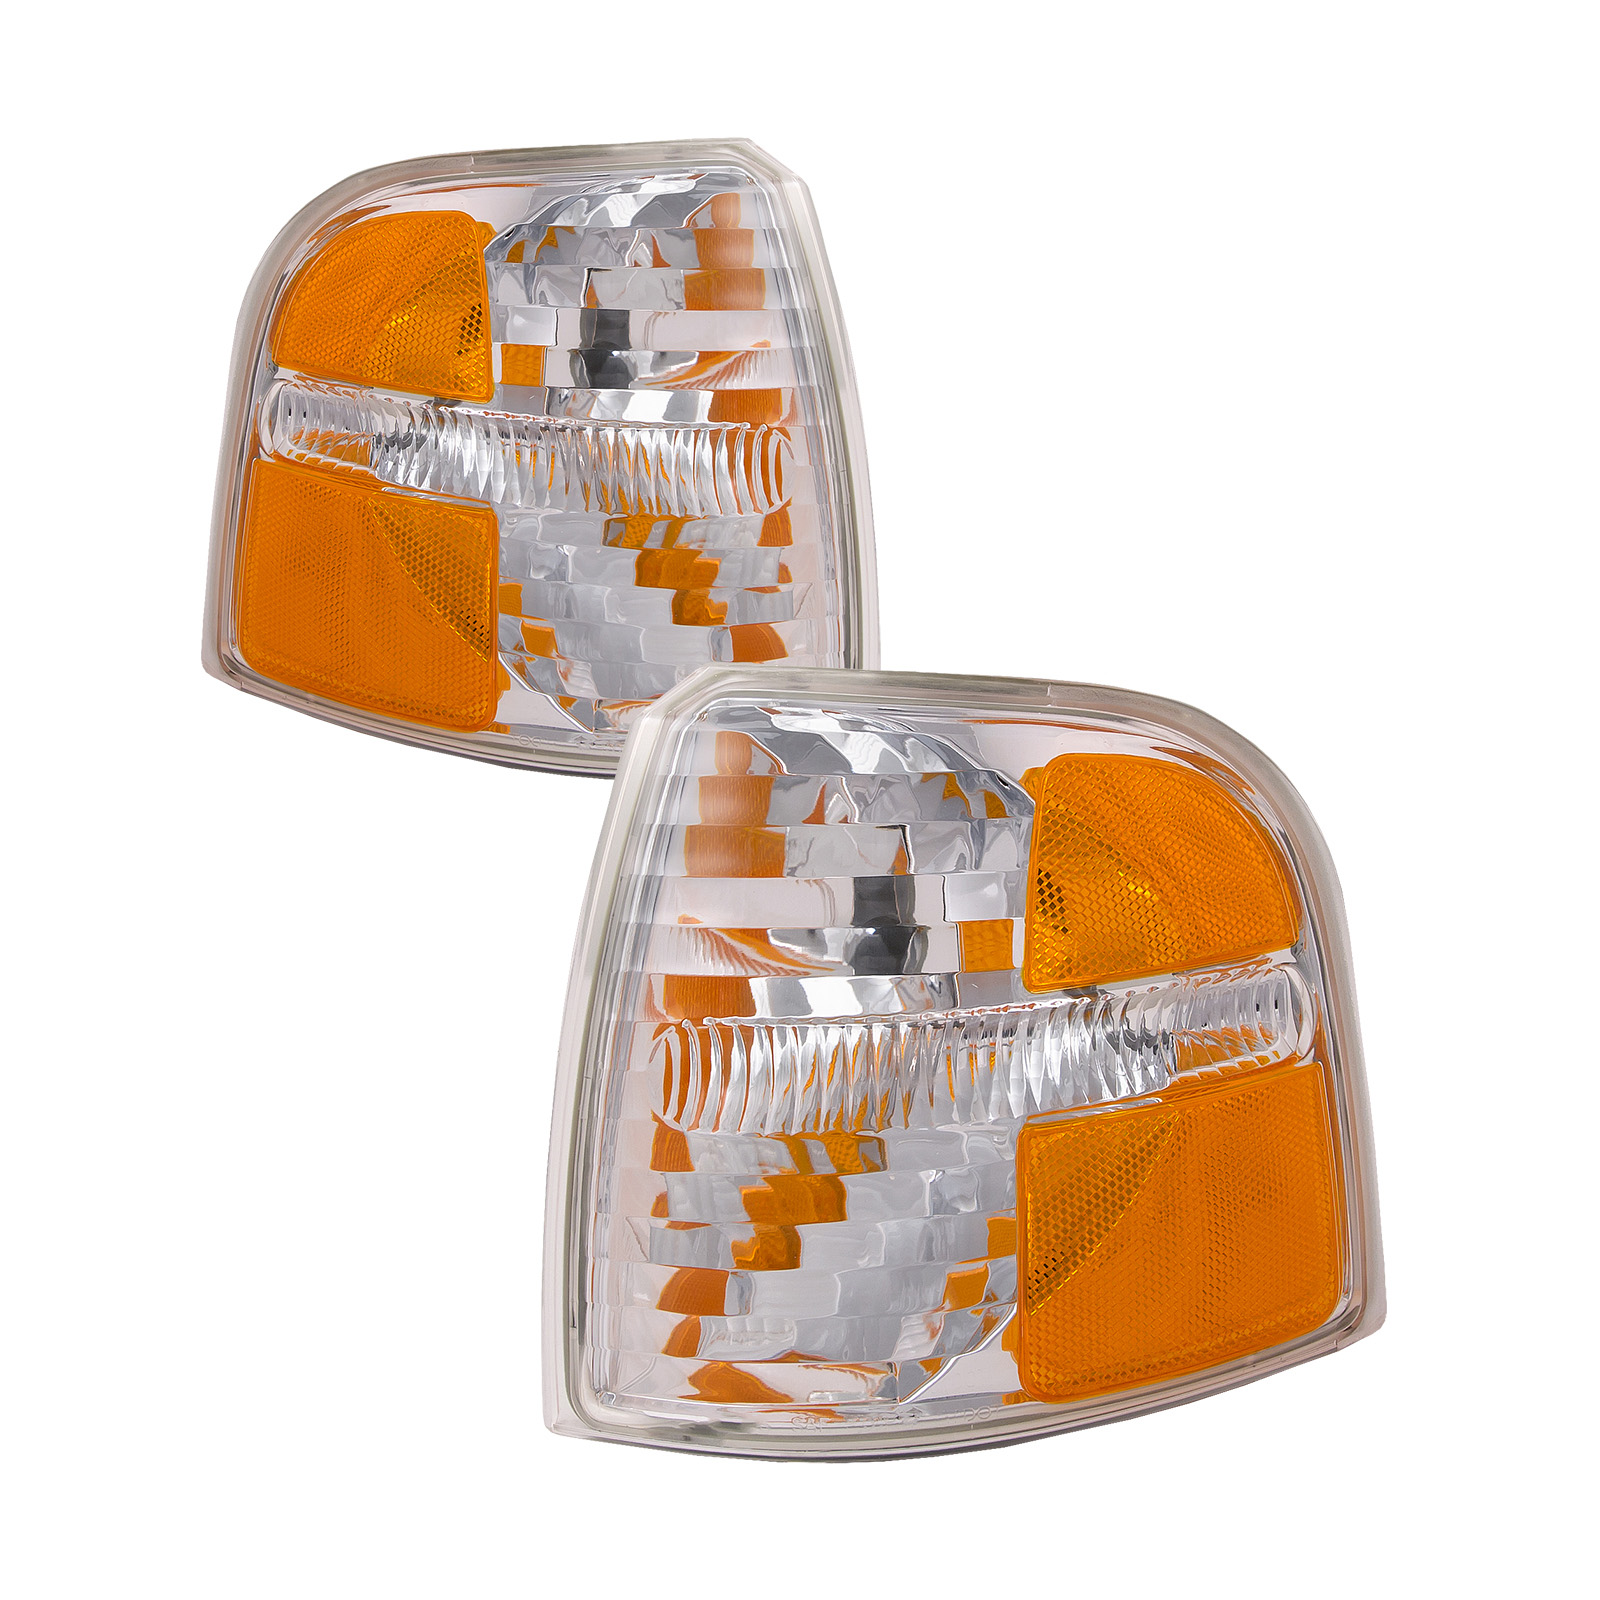 2004-2005 Ford Explorer New Park Signal Lights Set Driver Left Passenger Right Pair Assembly FO2520181 & FO2521181